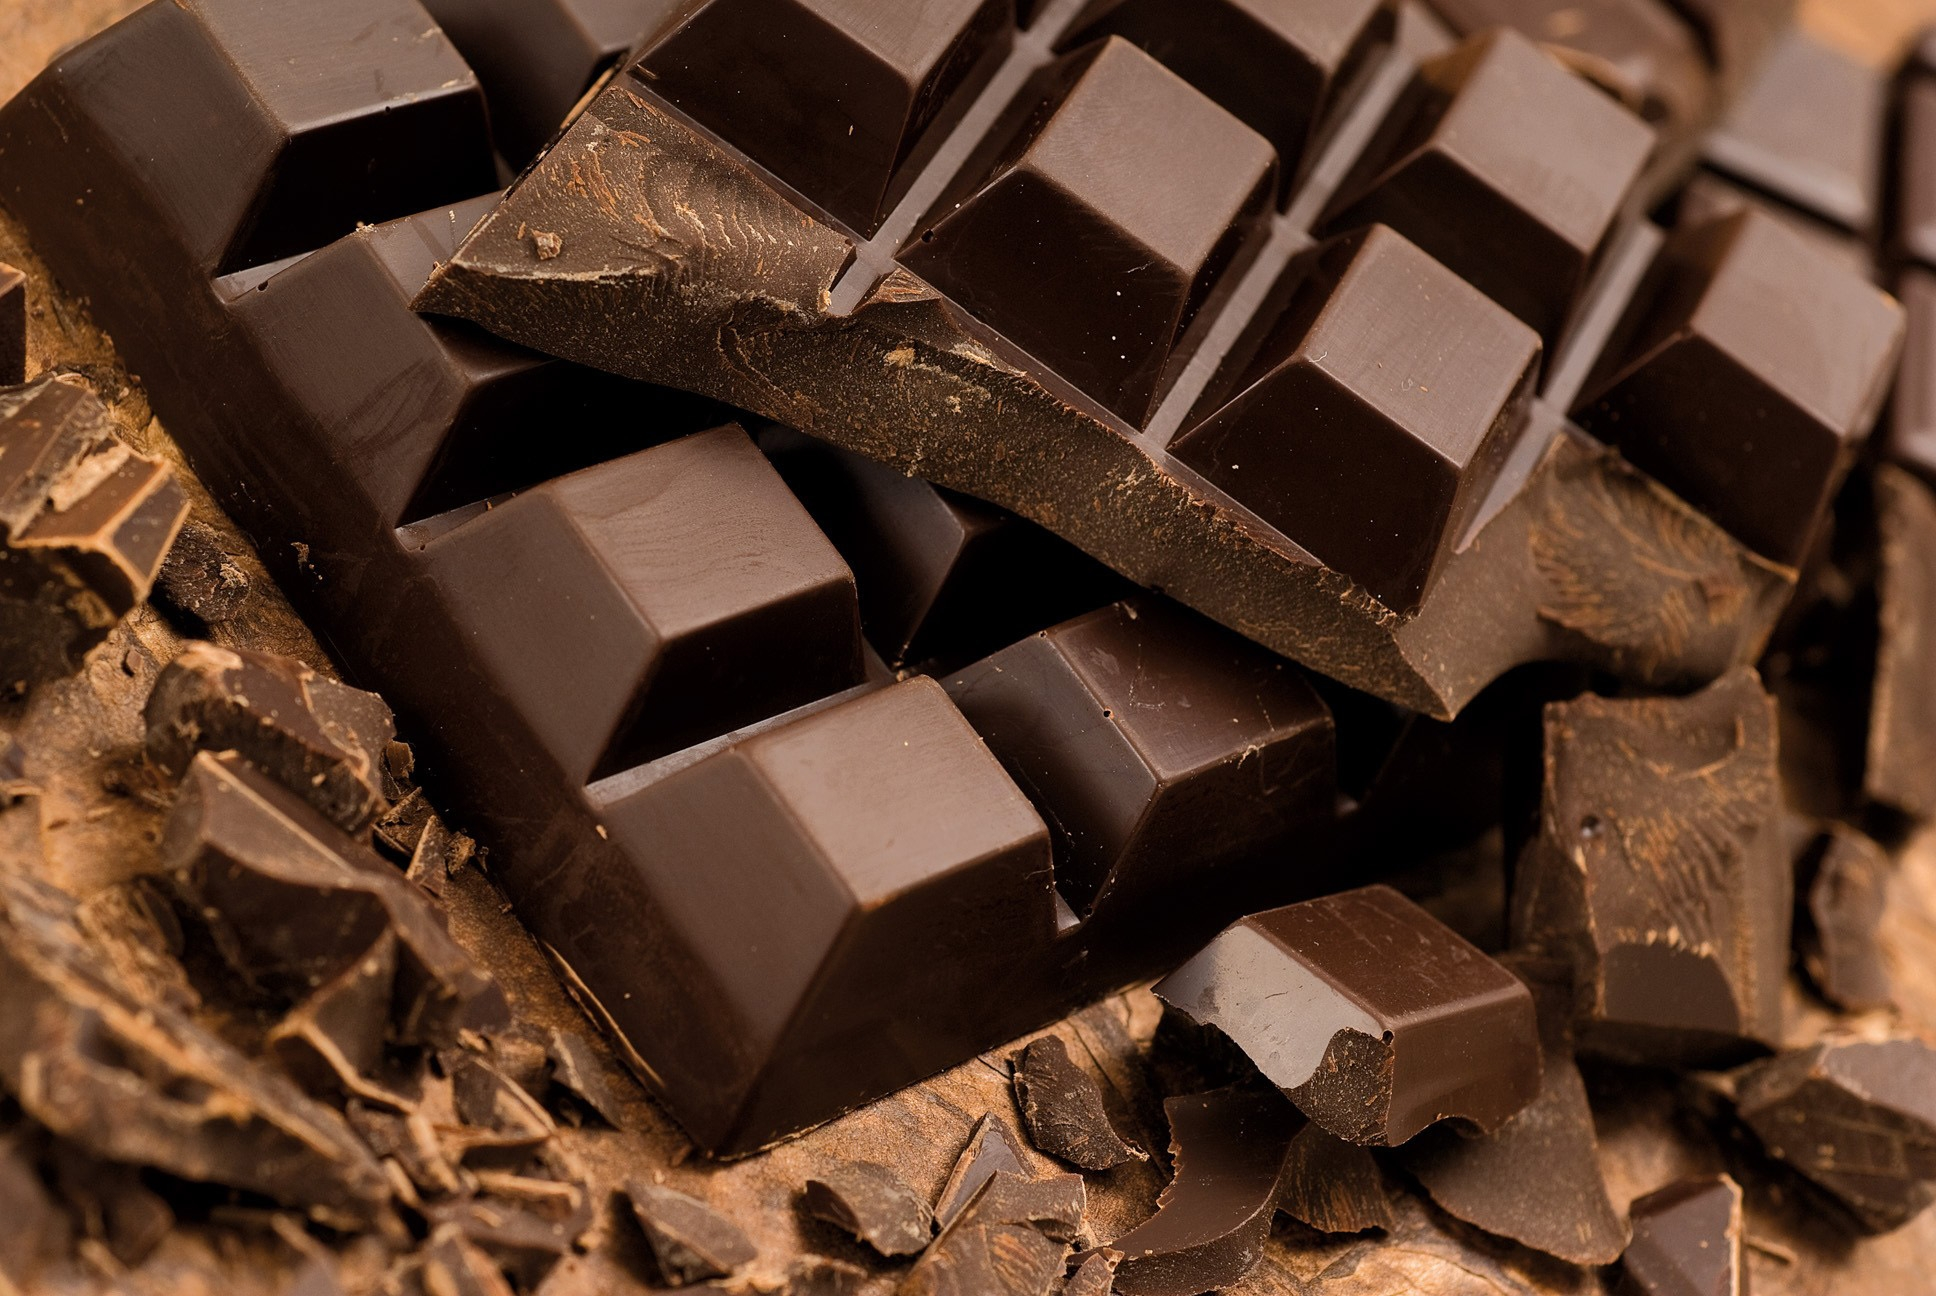 Five Myths About Chocolate You Shouldn't Believe